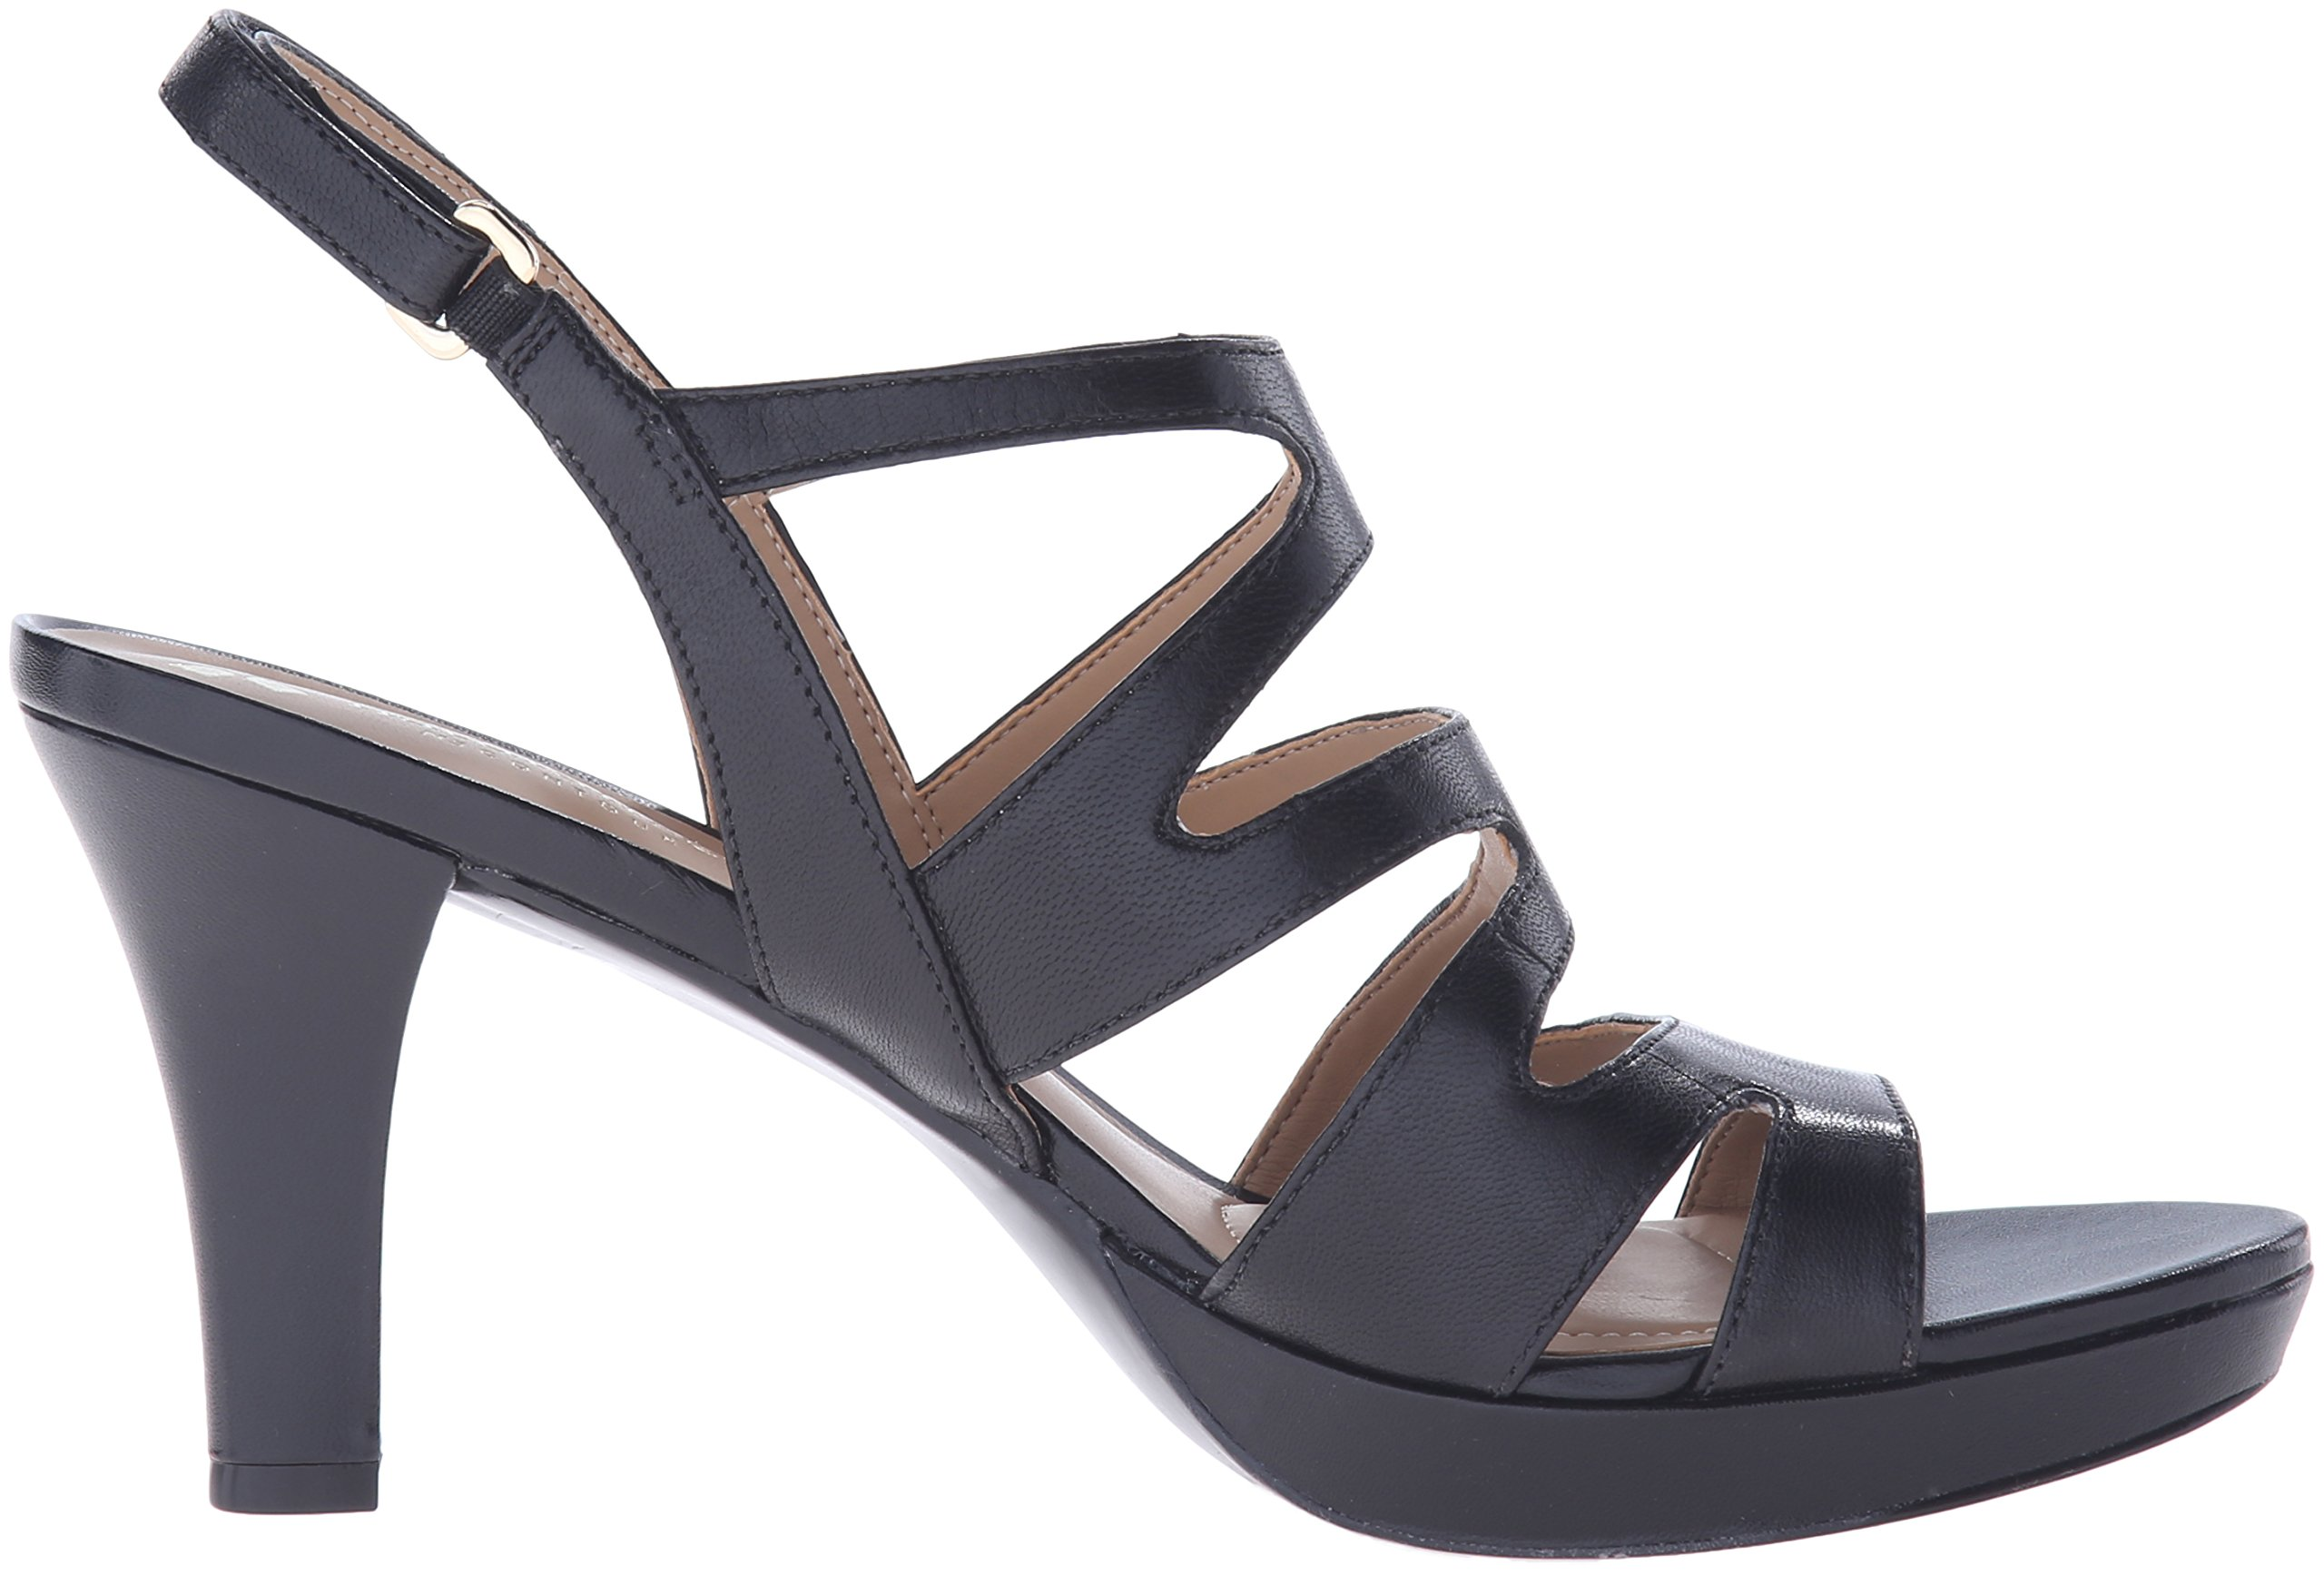 Naturalizer Women's Pressley Platform Dress Sandal, Black, 7 W US by Naturalizer (Image #7)